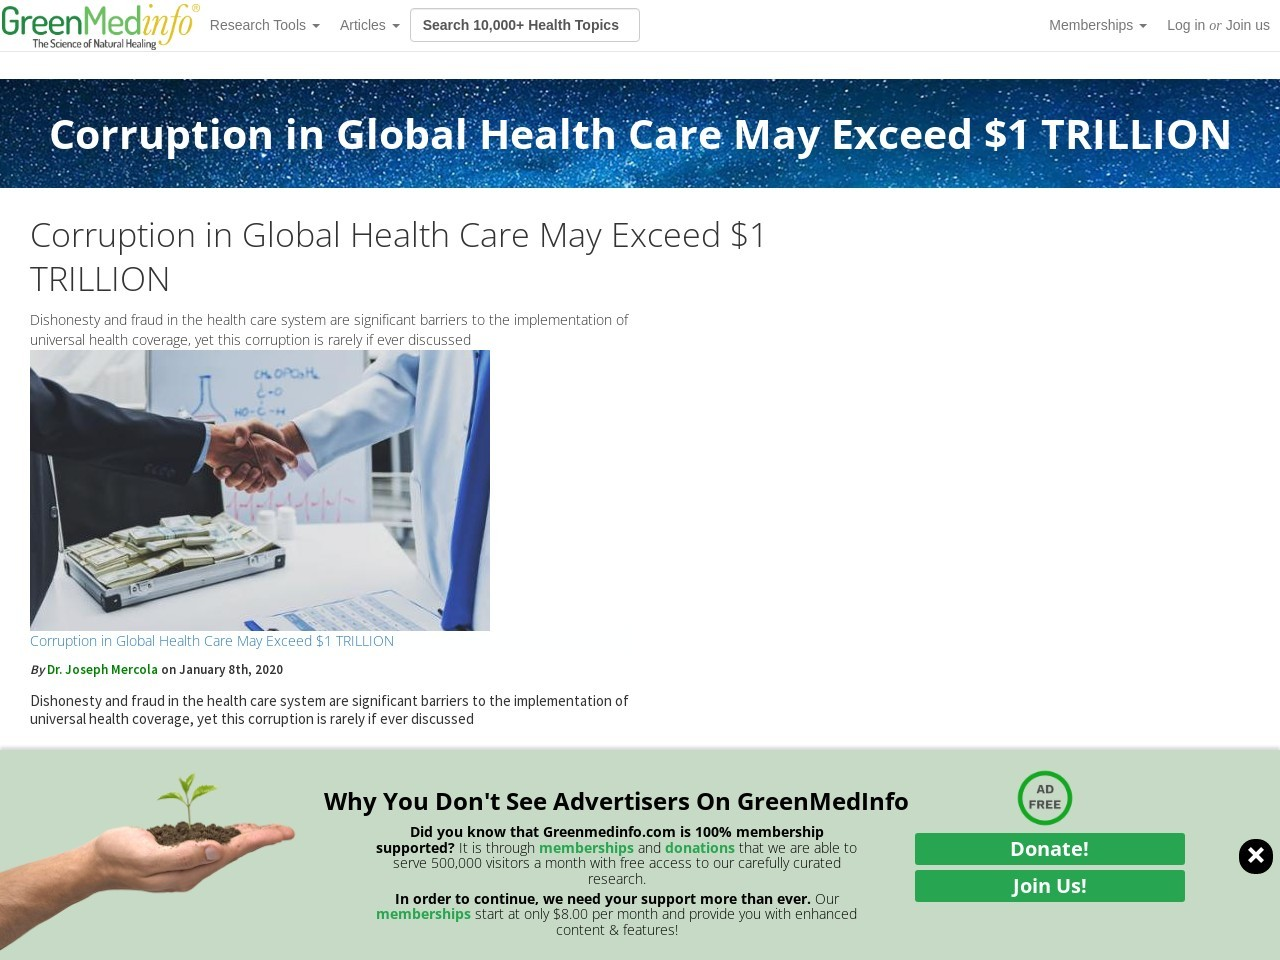 Corruption in Global Health Care May Exceed $1 TRILLION